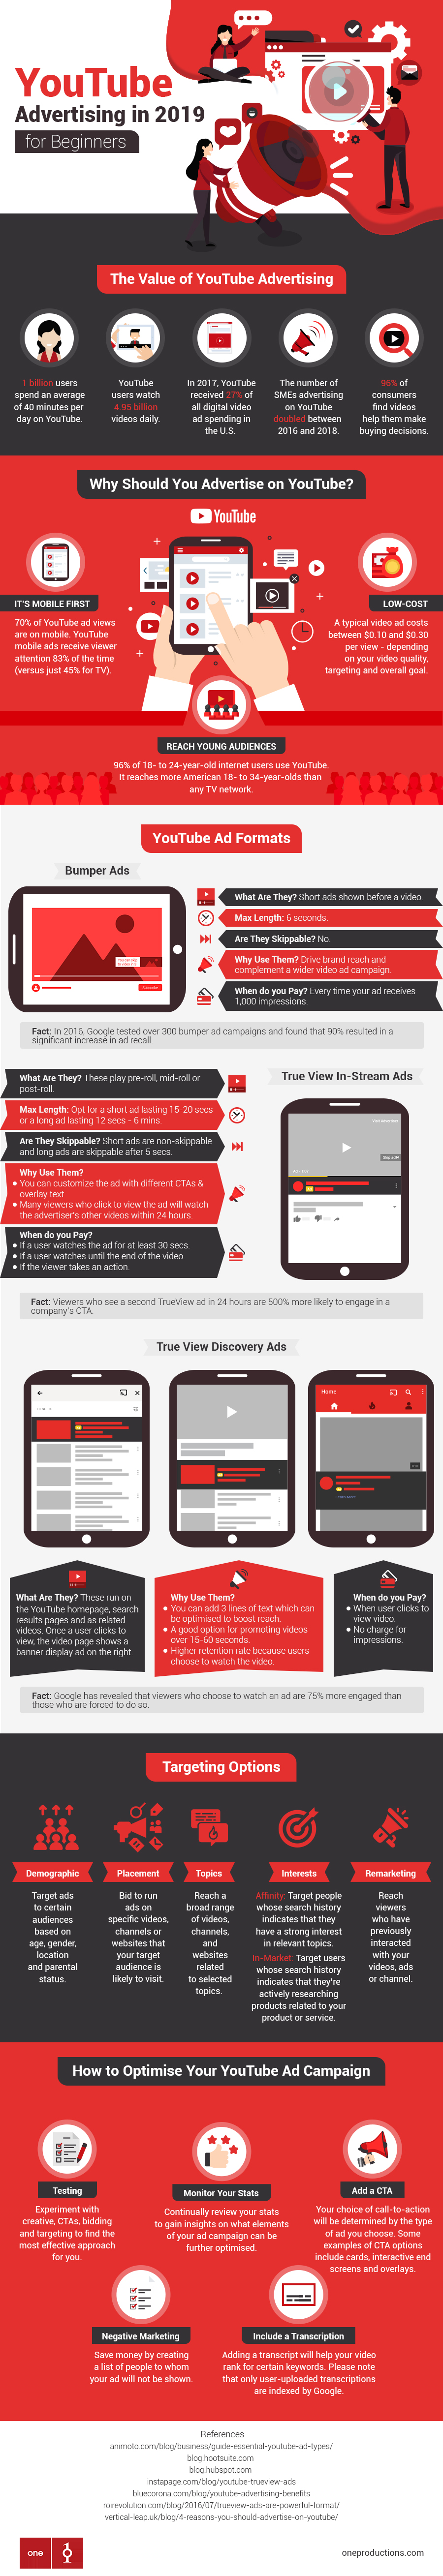 How to Advertise on YouTube. YouTube Advertising for Beginners (Infographic) 1